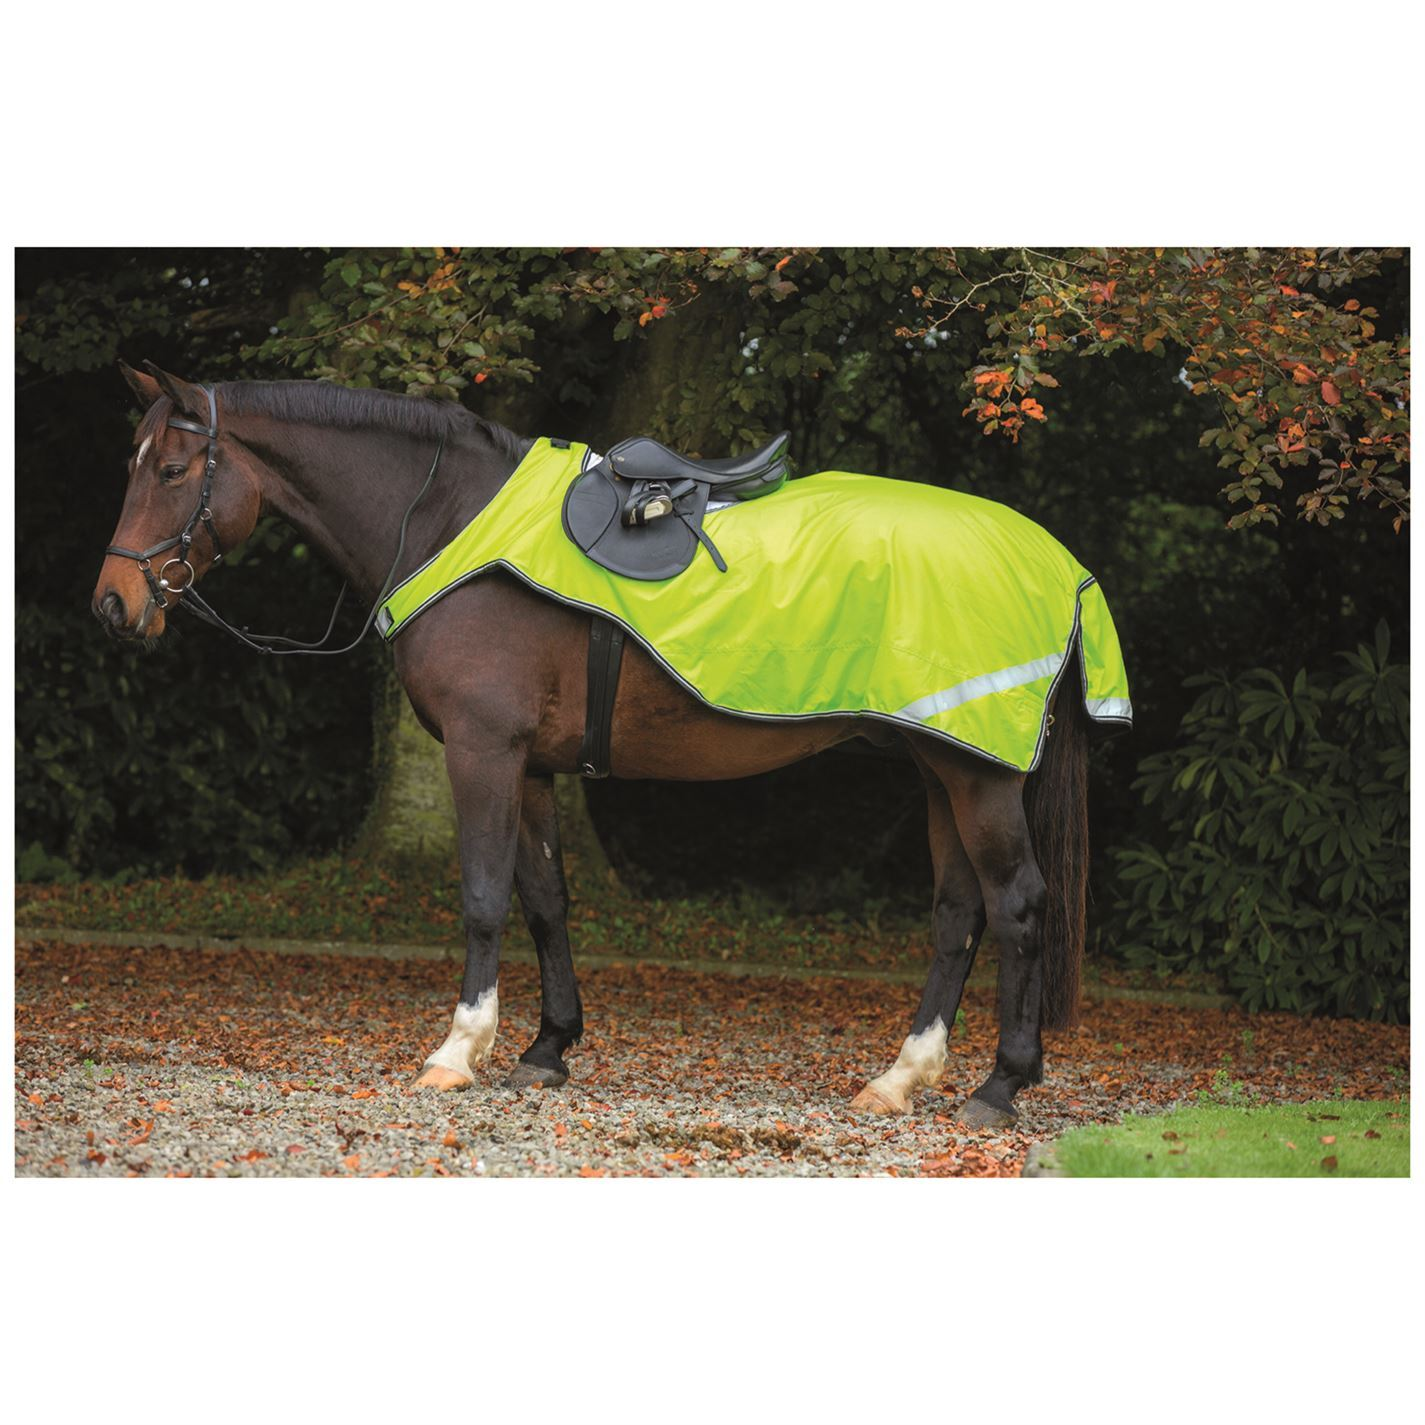 Horseware Horse Unisex Reflective Competition Sheet Horse Horseware Rug Waterproof Breathable 7d2607